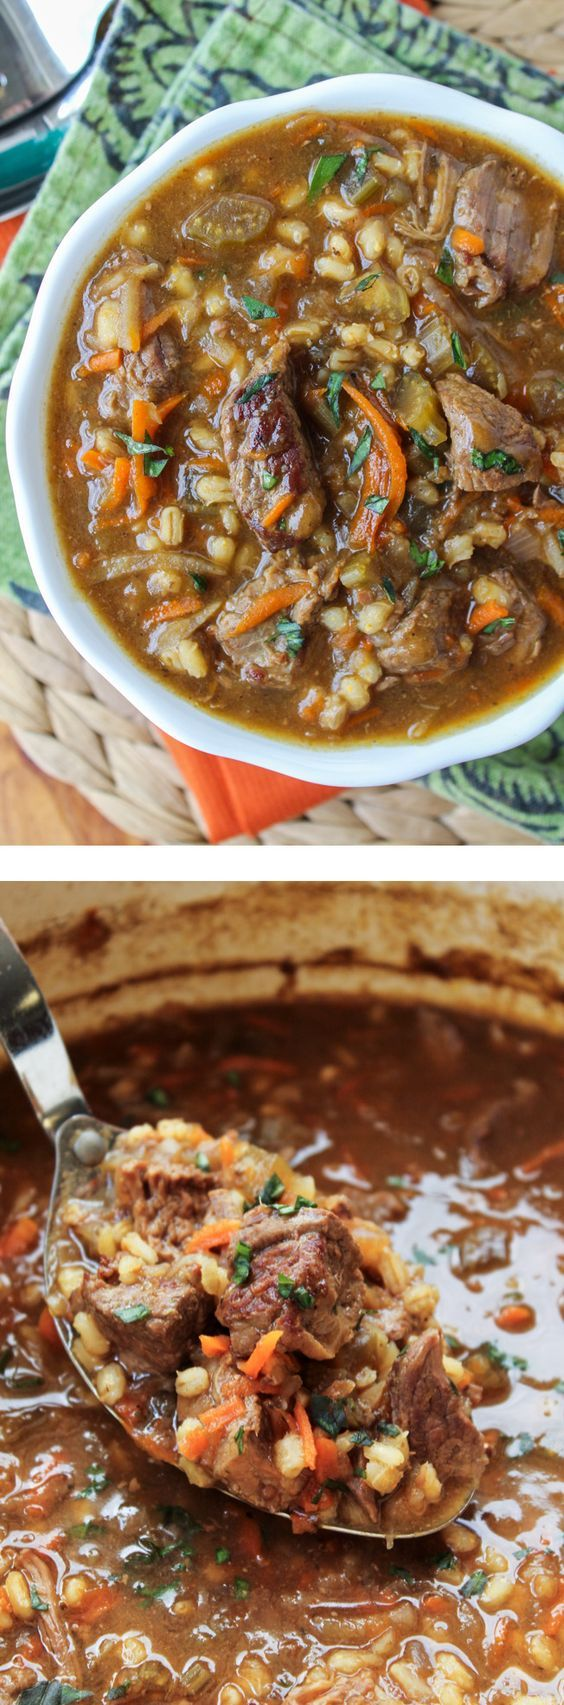 Beef Barley Crockpot Soup Recipe via The Food Charlatan